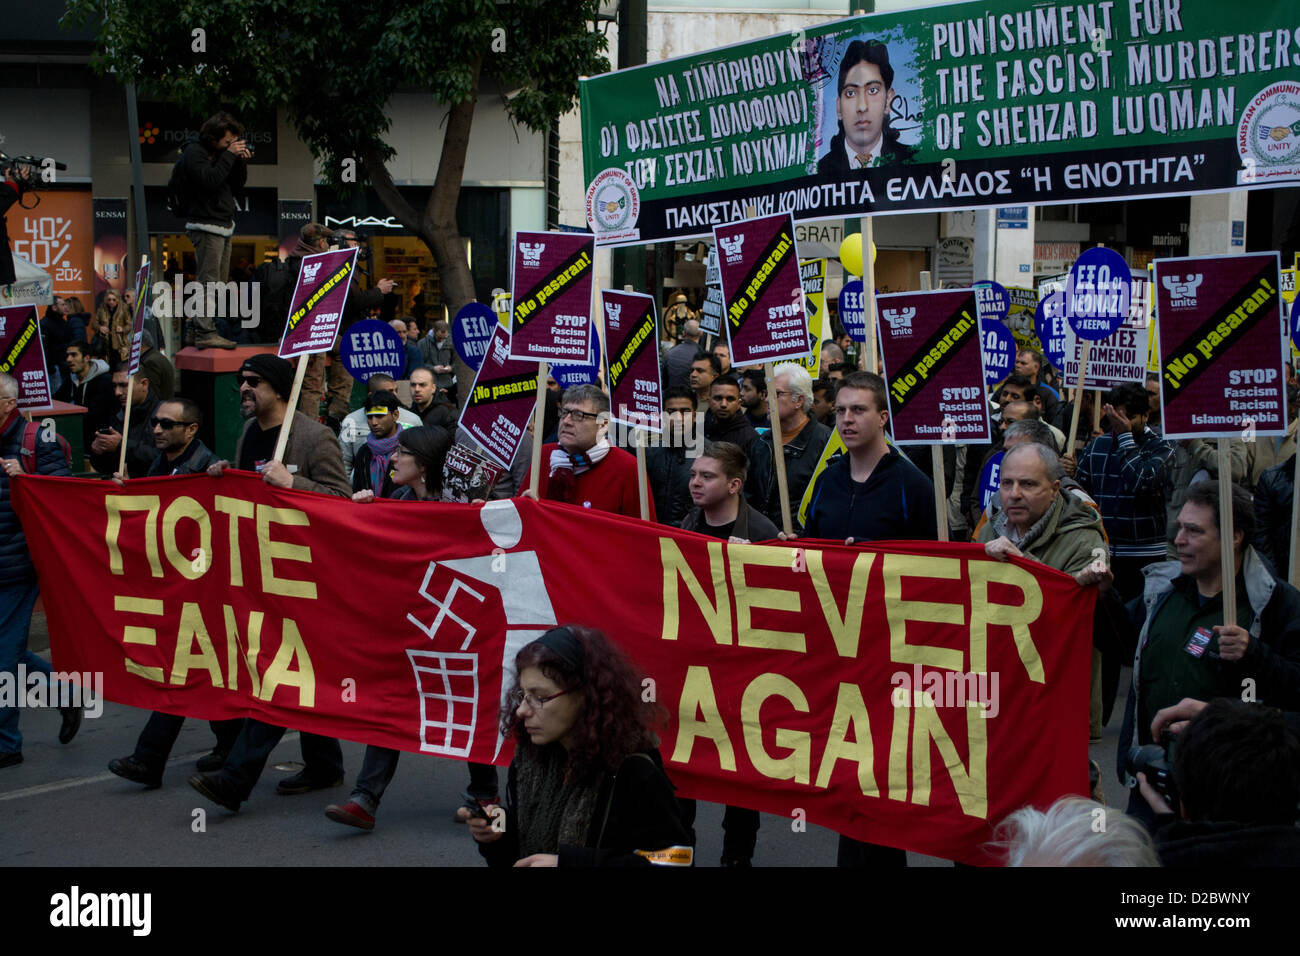 Athens, Greece, 19th Januray 2013. Immigrants and locals take to the streets to condemn fascism and protest against - Stock Image